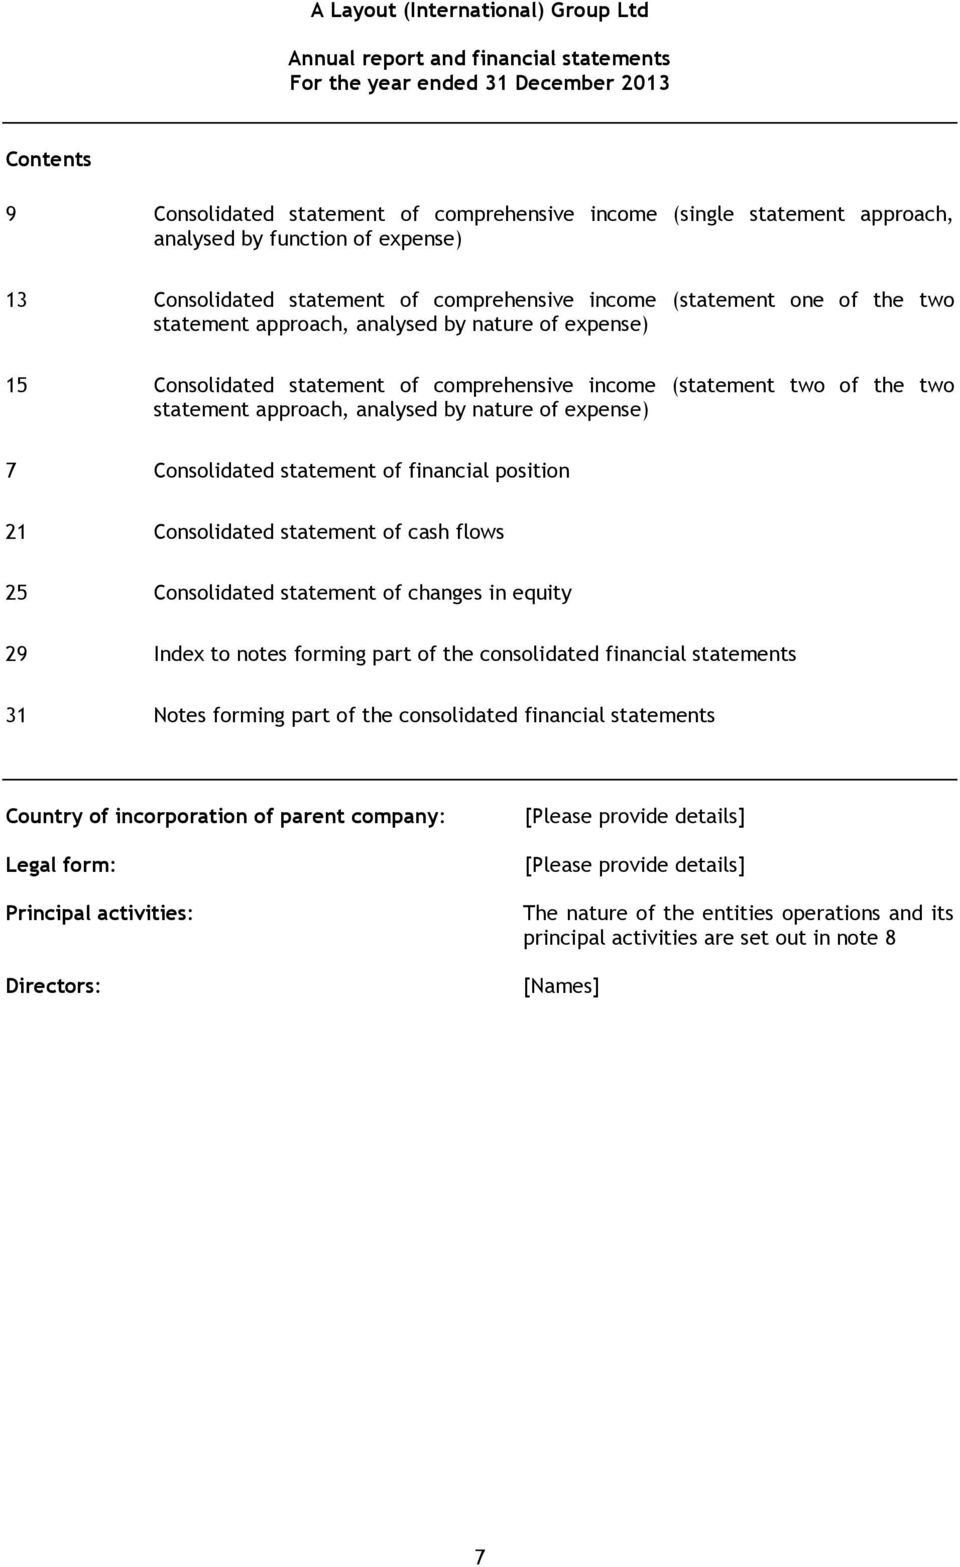 comprehensive income (statement two of the two statement approach, analysed by nature of expense) 7 Consolidated statement of financial position 21 Consolidated statement of cash flows 25